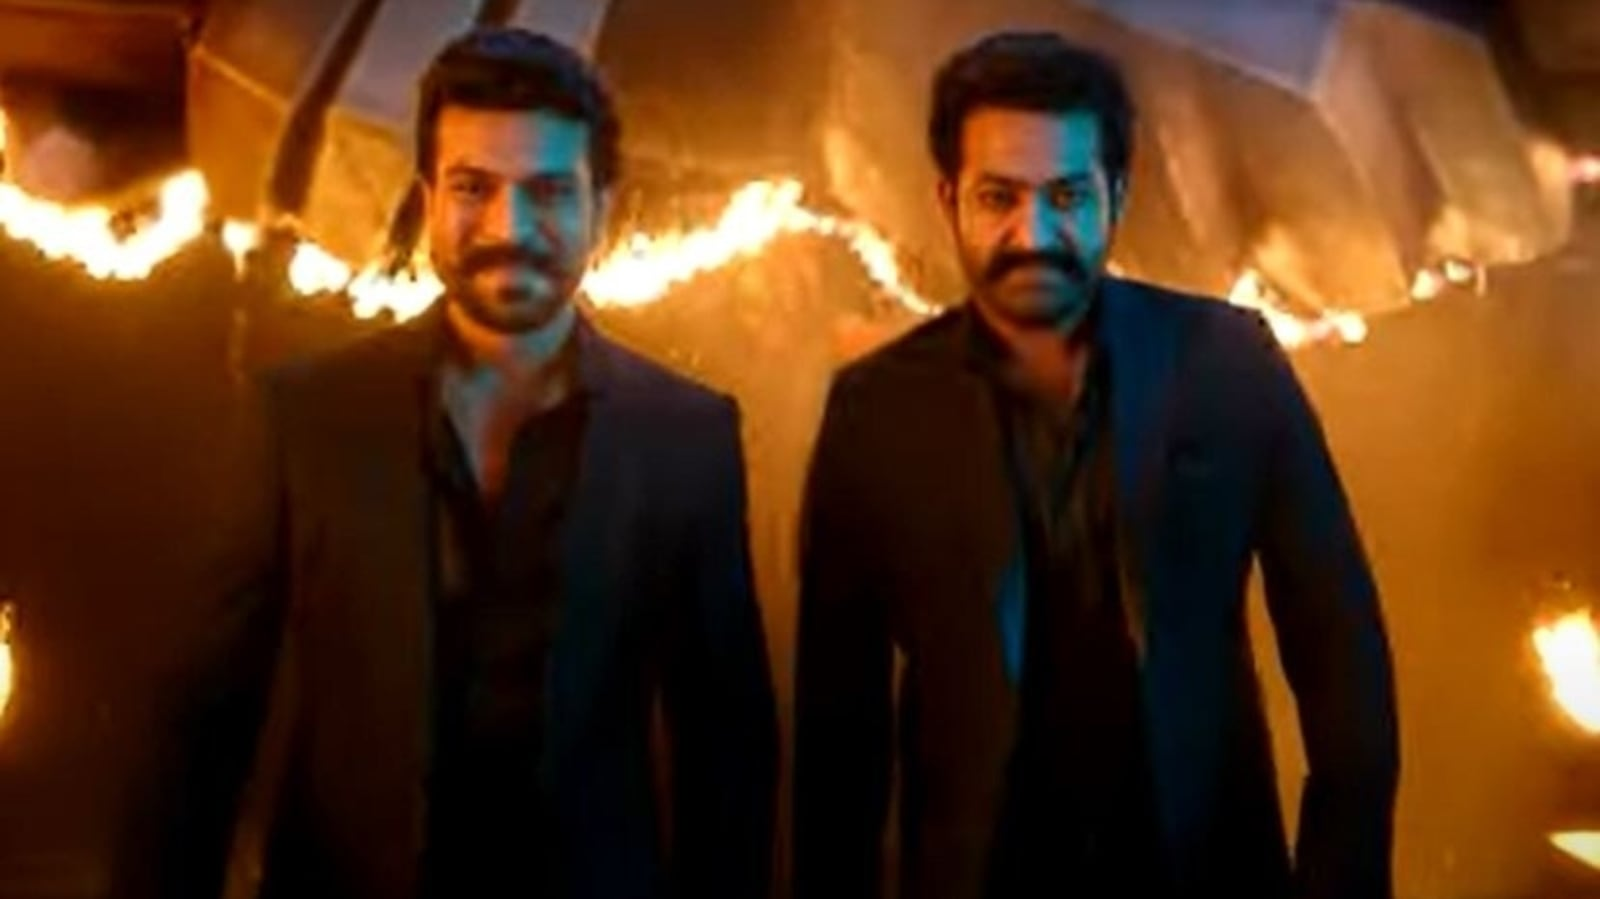 RRR Dosti song: Makers unveil special music video to celebrate Friendship Day, features Ram Charan and Jr NTR - Hindustan Times